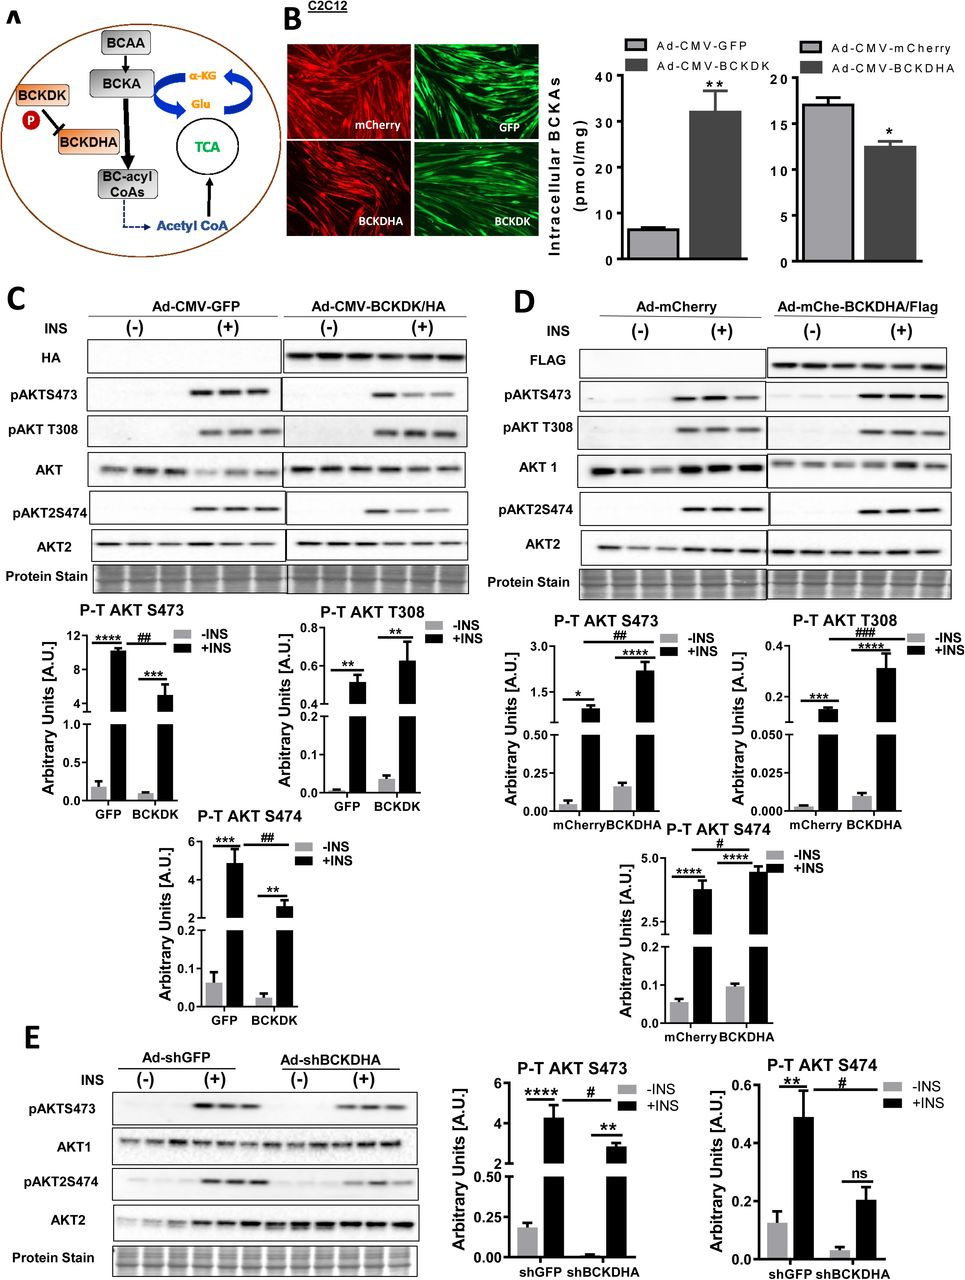 Modulating intracellular BCKAs by modifying BCAA catabolic enzyme expression alters skeletal and cardiac muscle insulin signaling. a) Brief schematic of enzymes regulating BCKA catabolism. b) UPLC mass spectrometric analysis of intracellular BCKAs levels in C2C12 myotubes transduced with Ad-CMV-GFP-hBCKDK/HA (MOI 150) or Ad-CMV-mCherry-hBCKDHA/Flag (MOI 150) and their appropriate controls. The graph represents mean ± S.E.M., n=3, *p